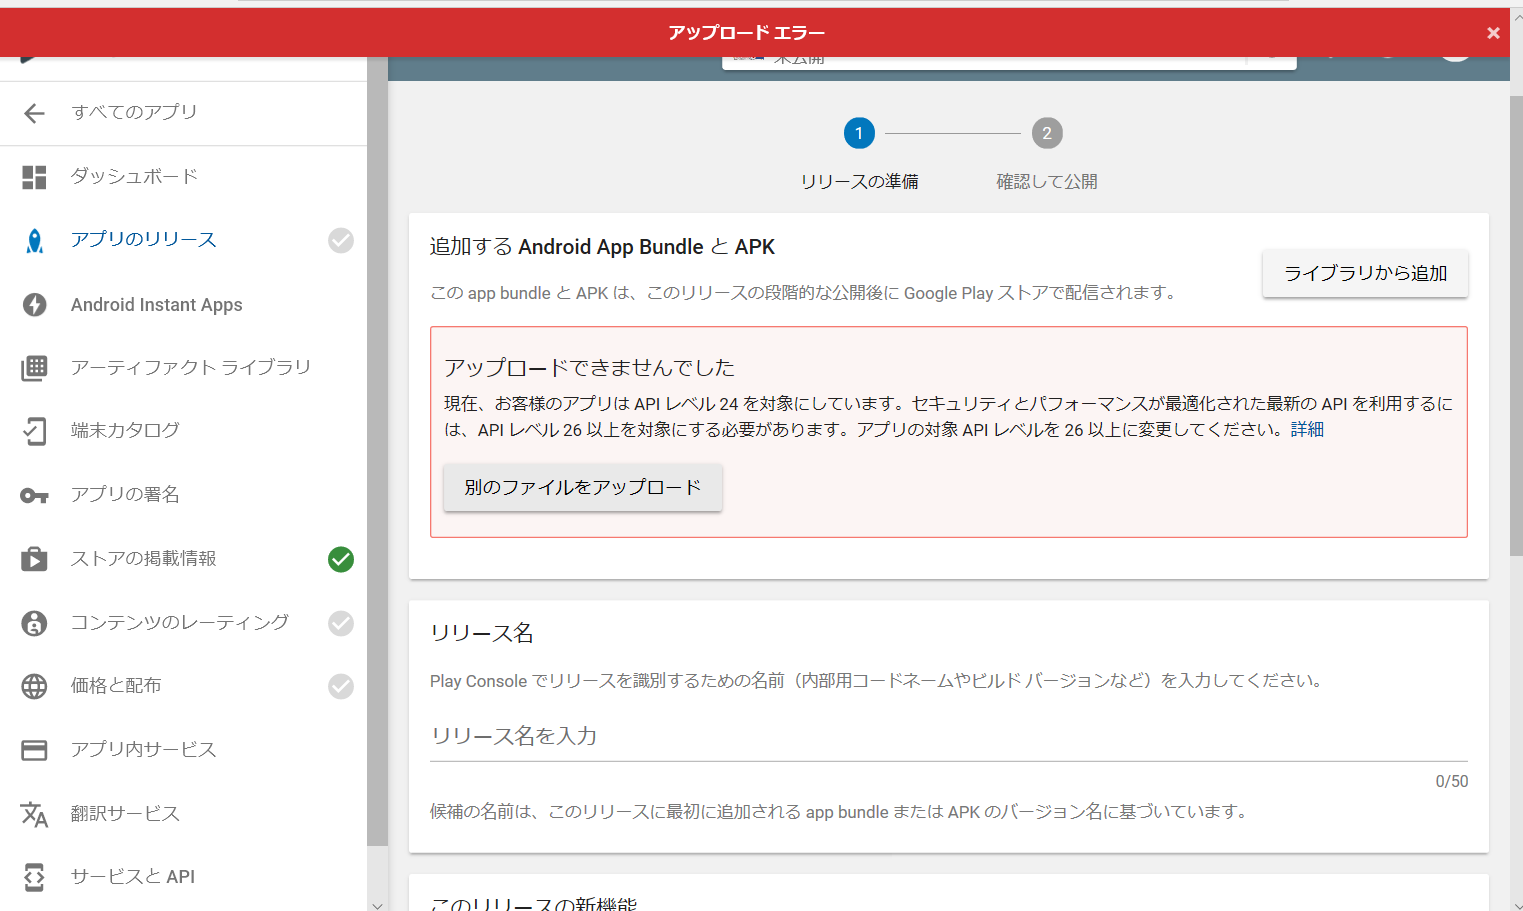 Unity】Target API Level of Google Play was changed to